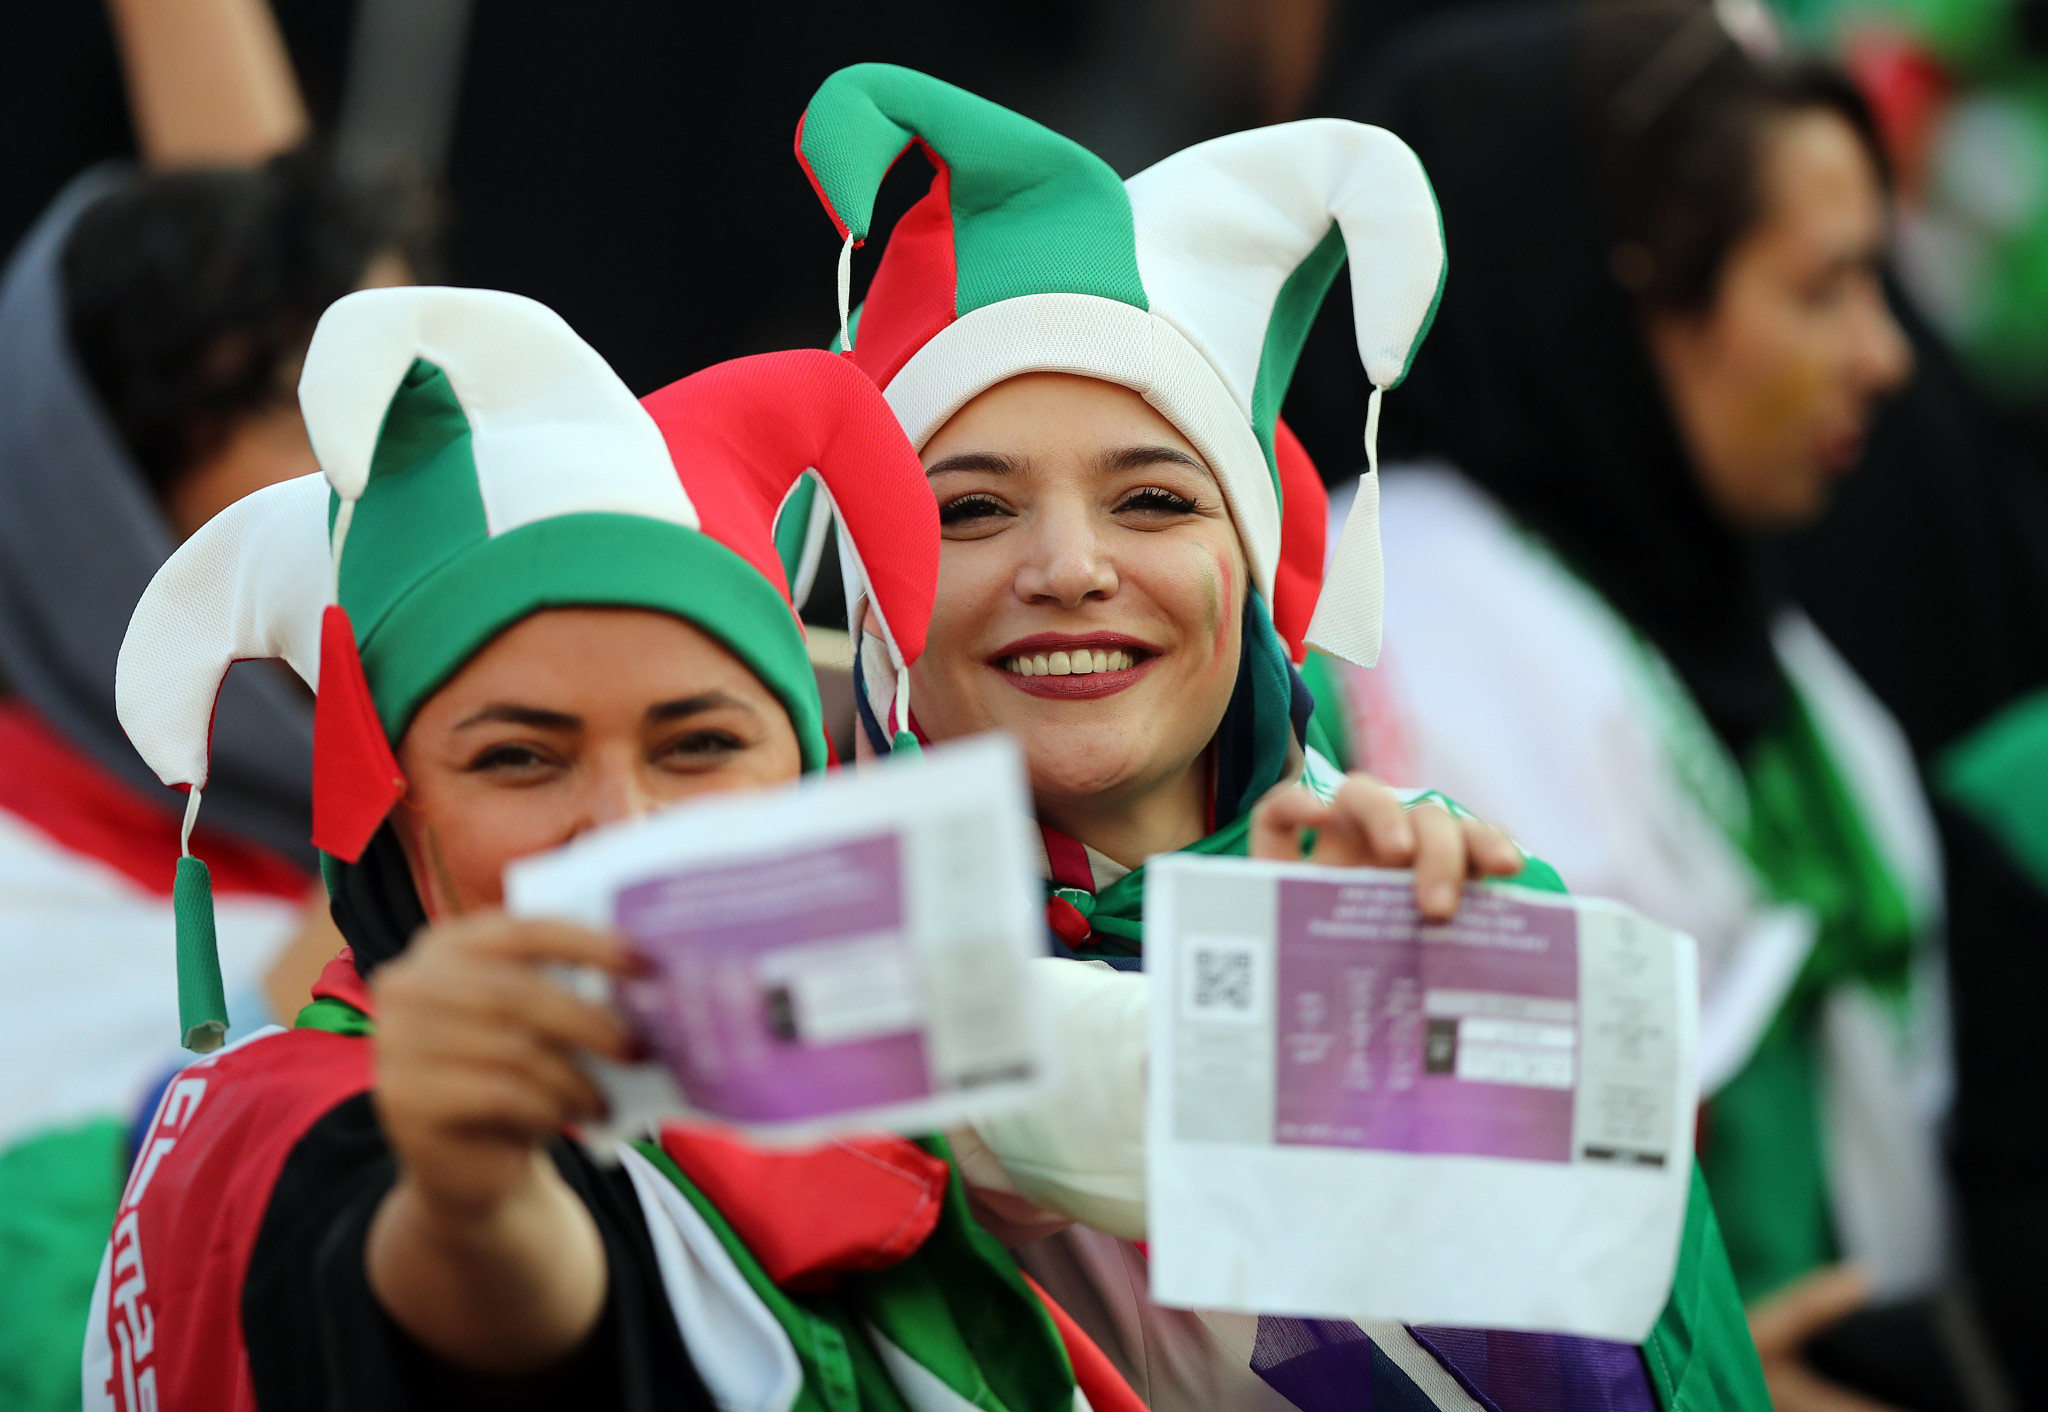 Around 4,600 women were allowed to watch the FIFA 2022 World Cup qualifying match between Iran and Cambodia in Tehran, marking a break in a 40-year-ban ©Getty Images